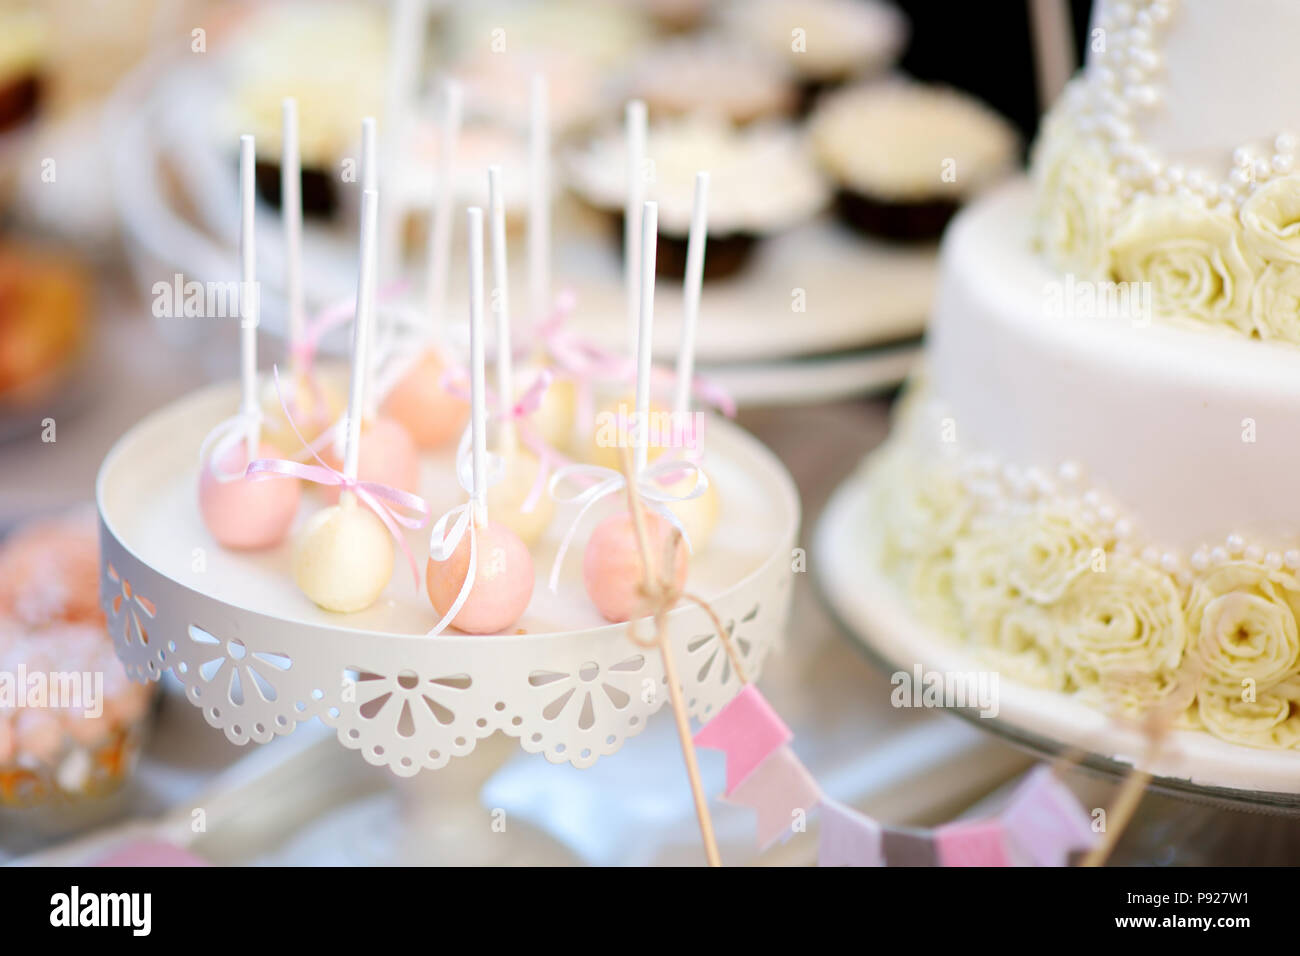 Beautiful Desserts Sweets And Candy Table At Wedding Reception Or